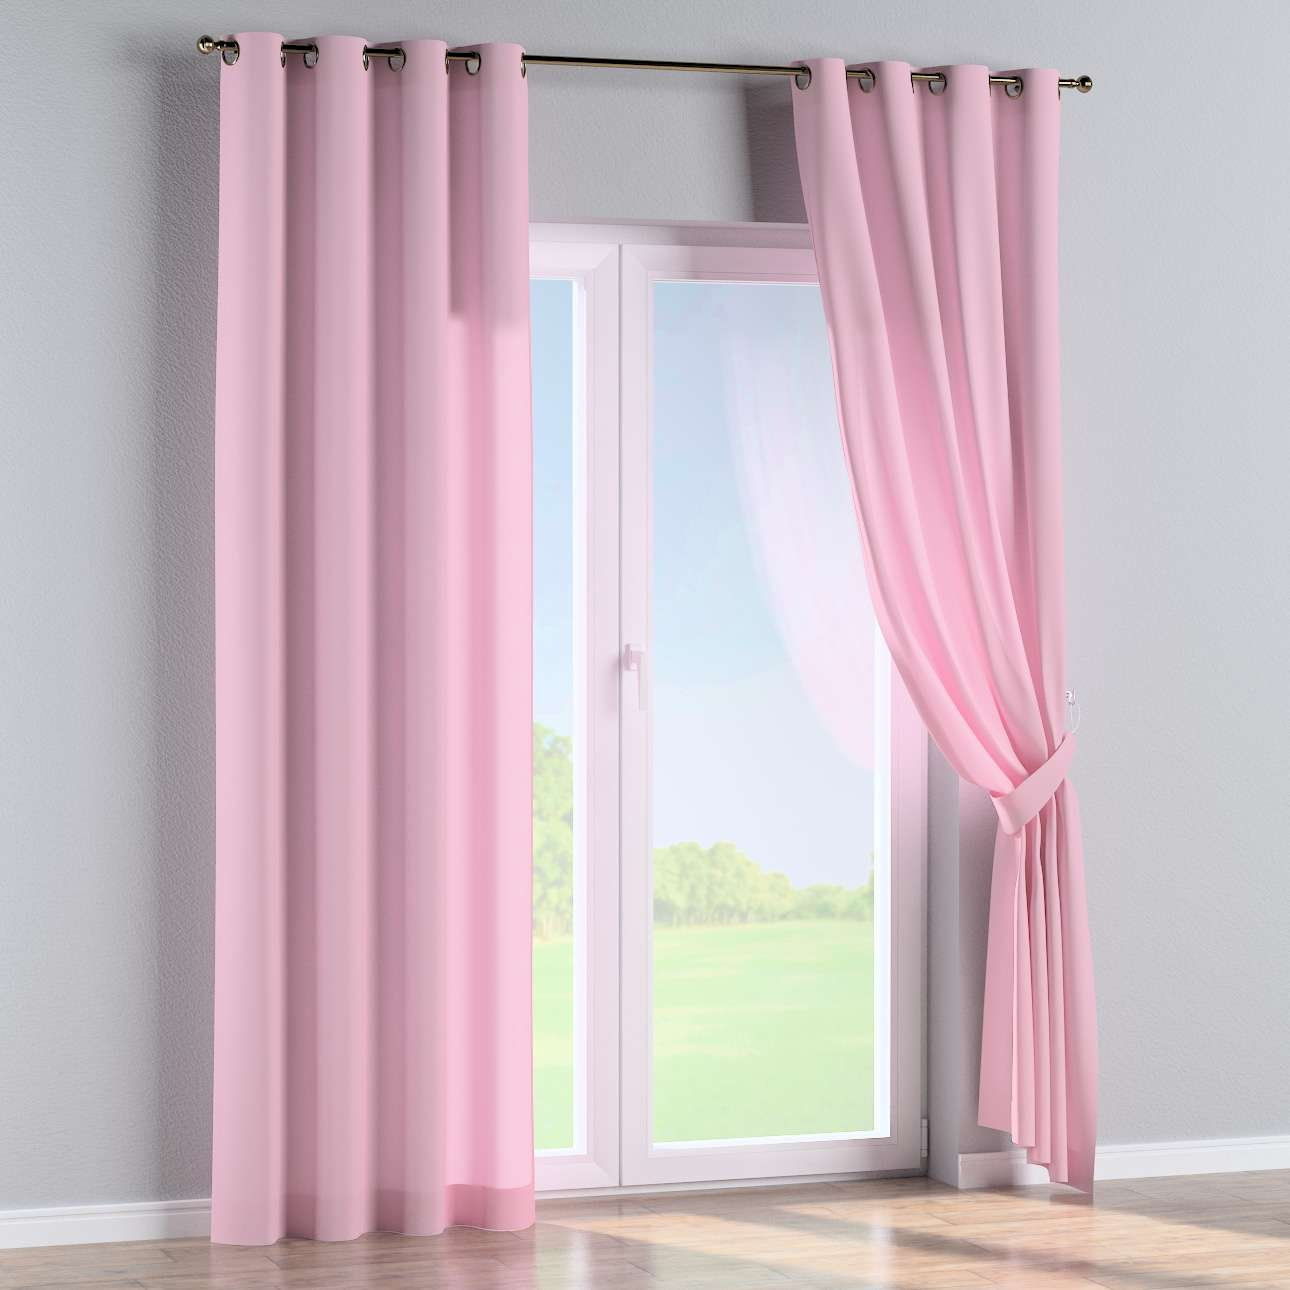 Eyelet curtains 130 x 260 cm (51 x 102 inch) in collection Loneta , fabric: 133-36